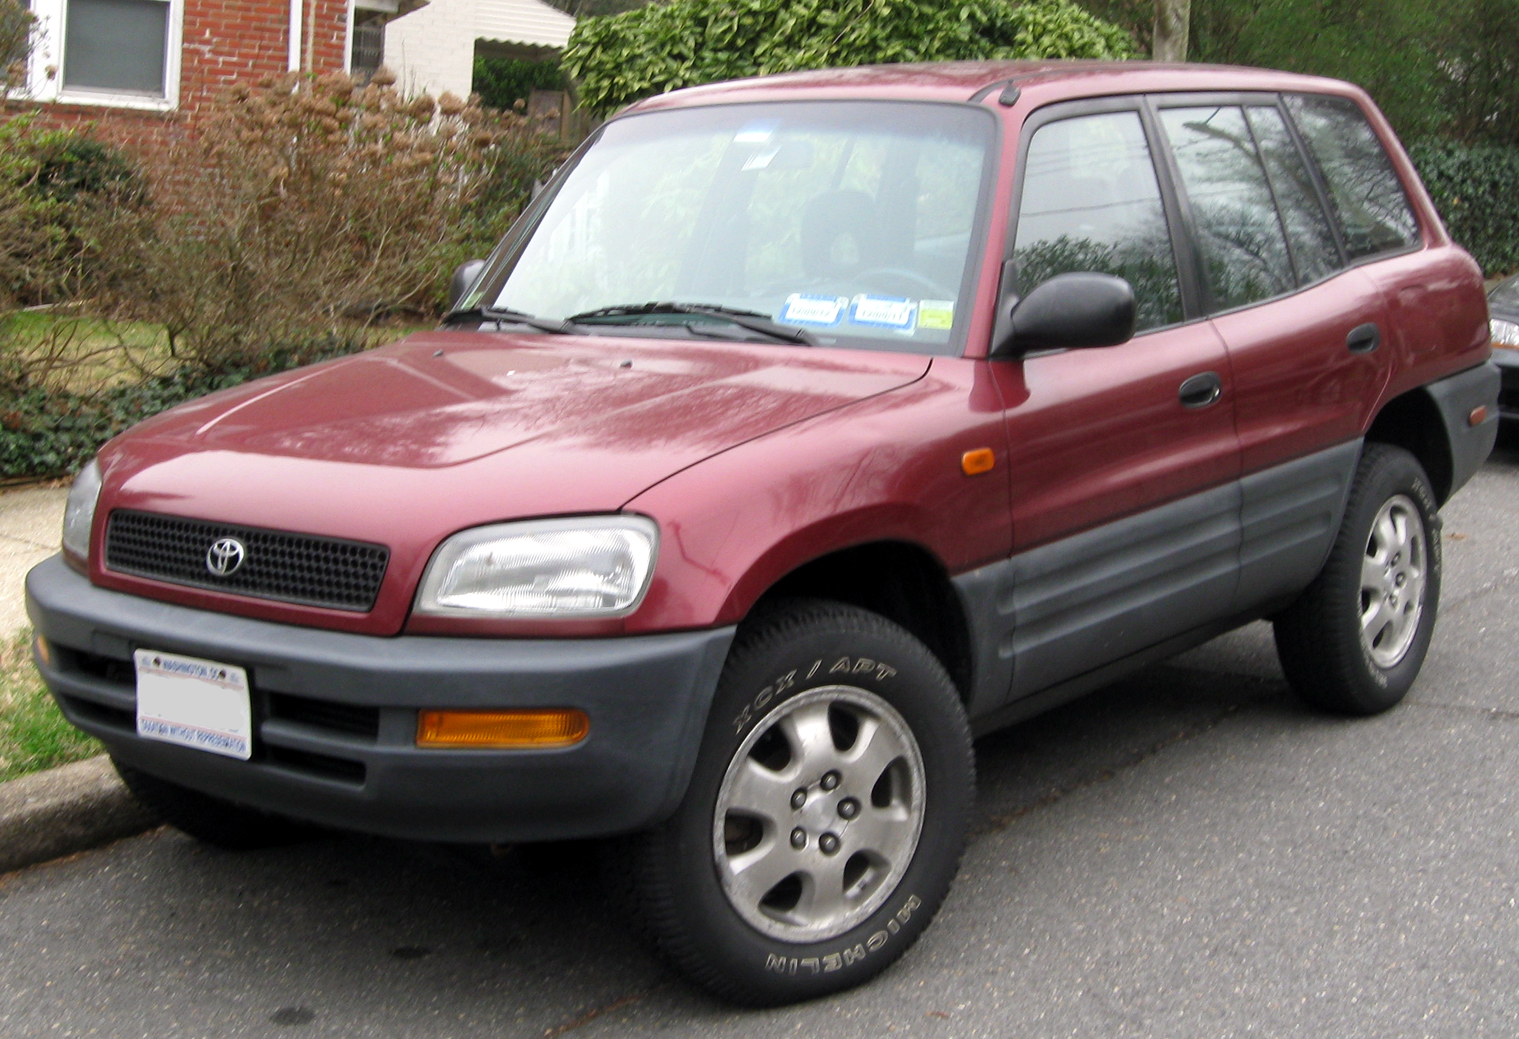 File1996 1997 toyota rav4 four door 03 16 2012g wikimedia file1996 1997 toyota rav4 four door 03 16 sciox Choice Image